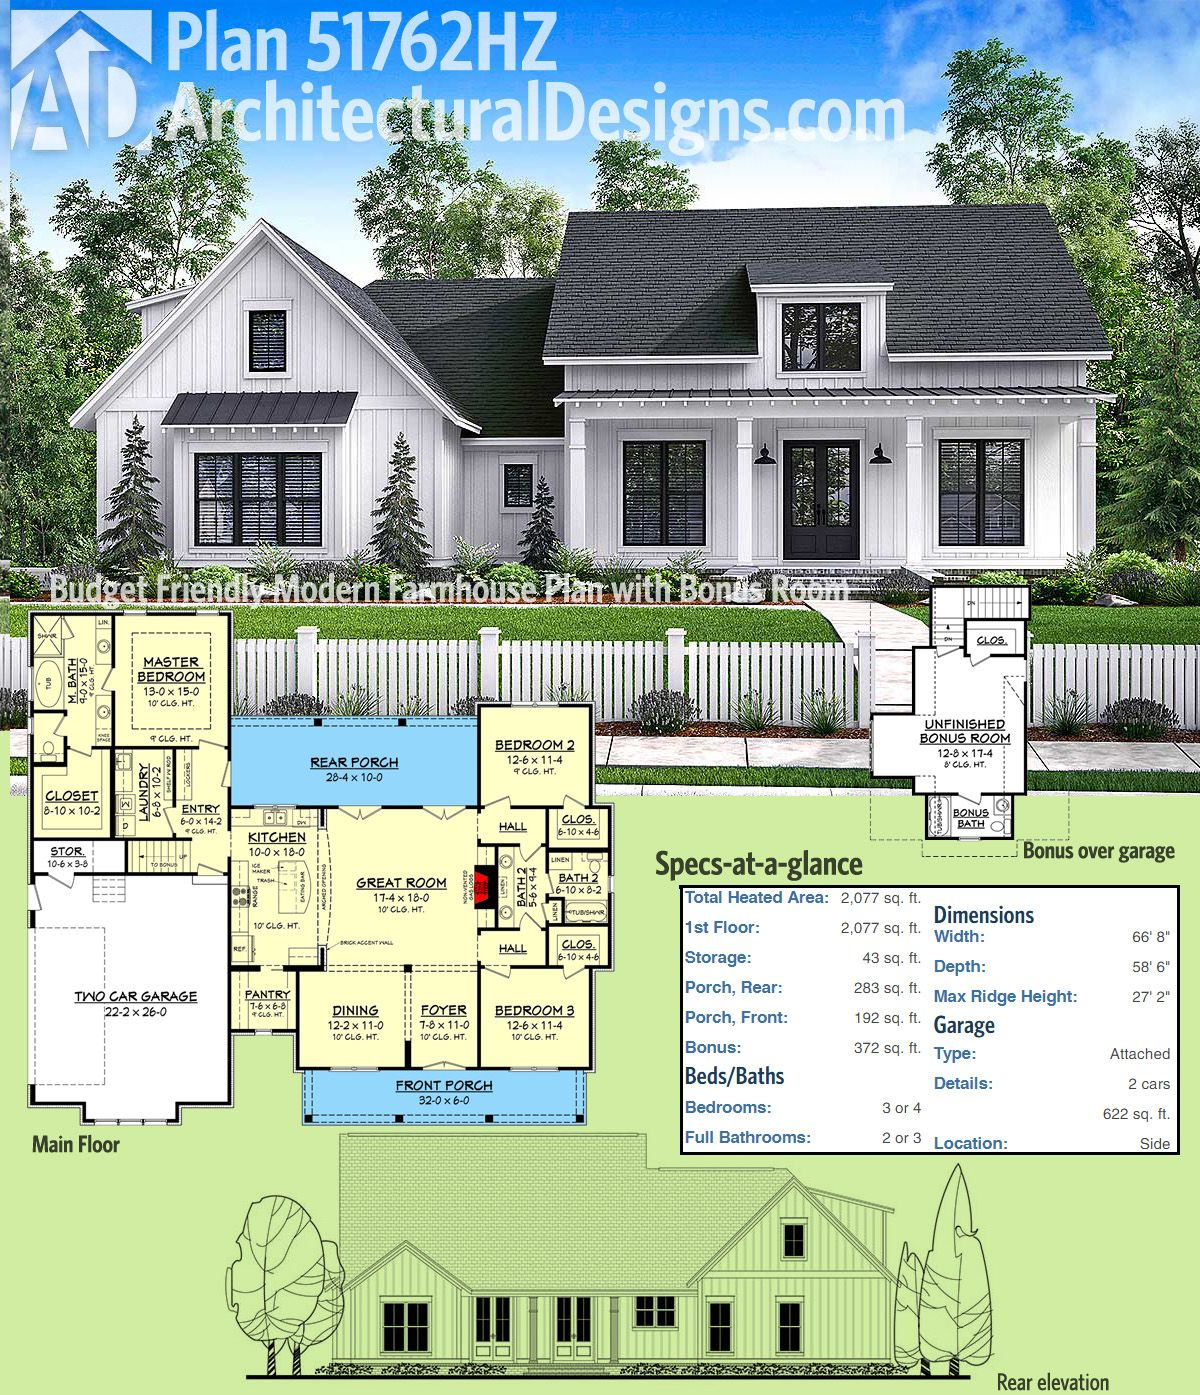 Plan 51762hz budget friendly modern farmhouse plan with for Architectural design plans